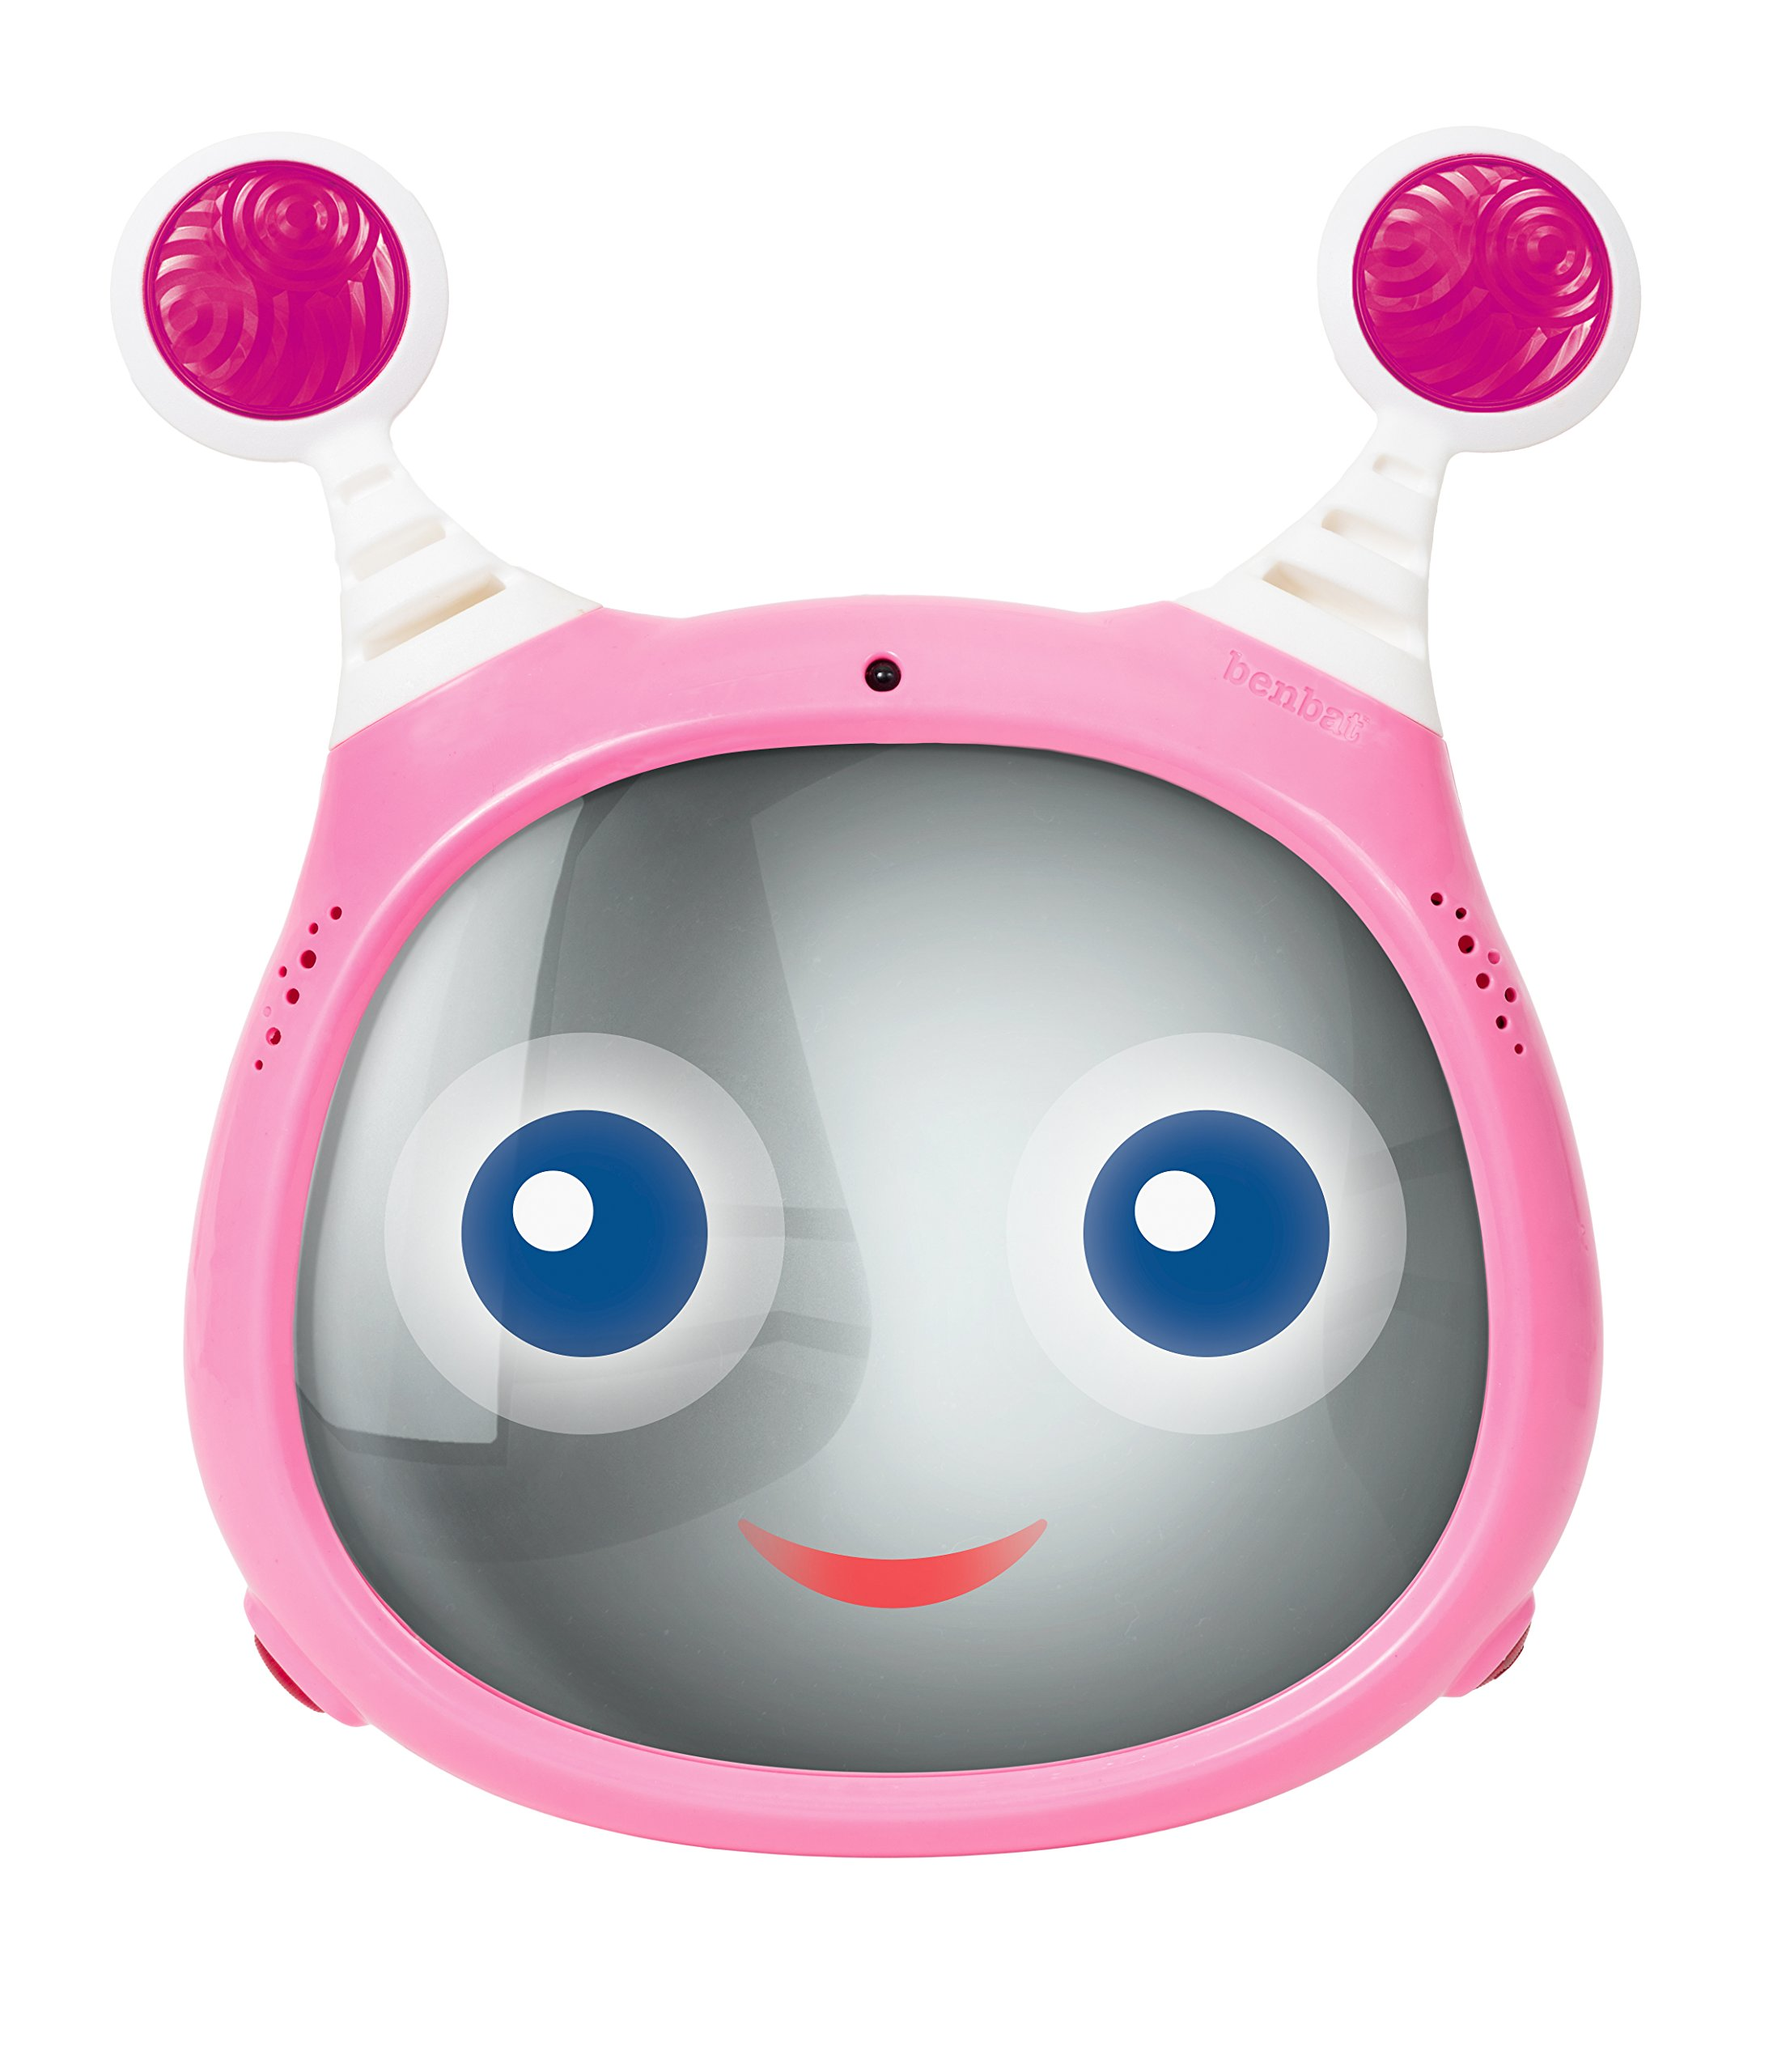 BenBat OLY Active Baby Car Mirror with Remote Control, Pink by BenBat